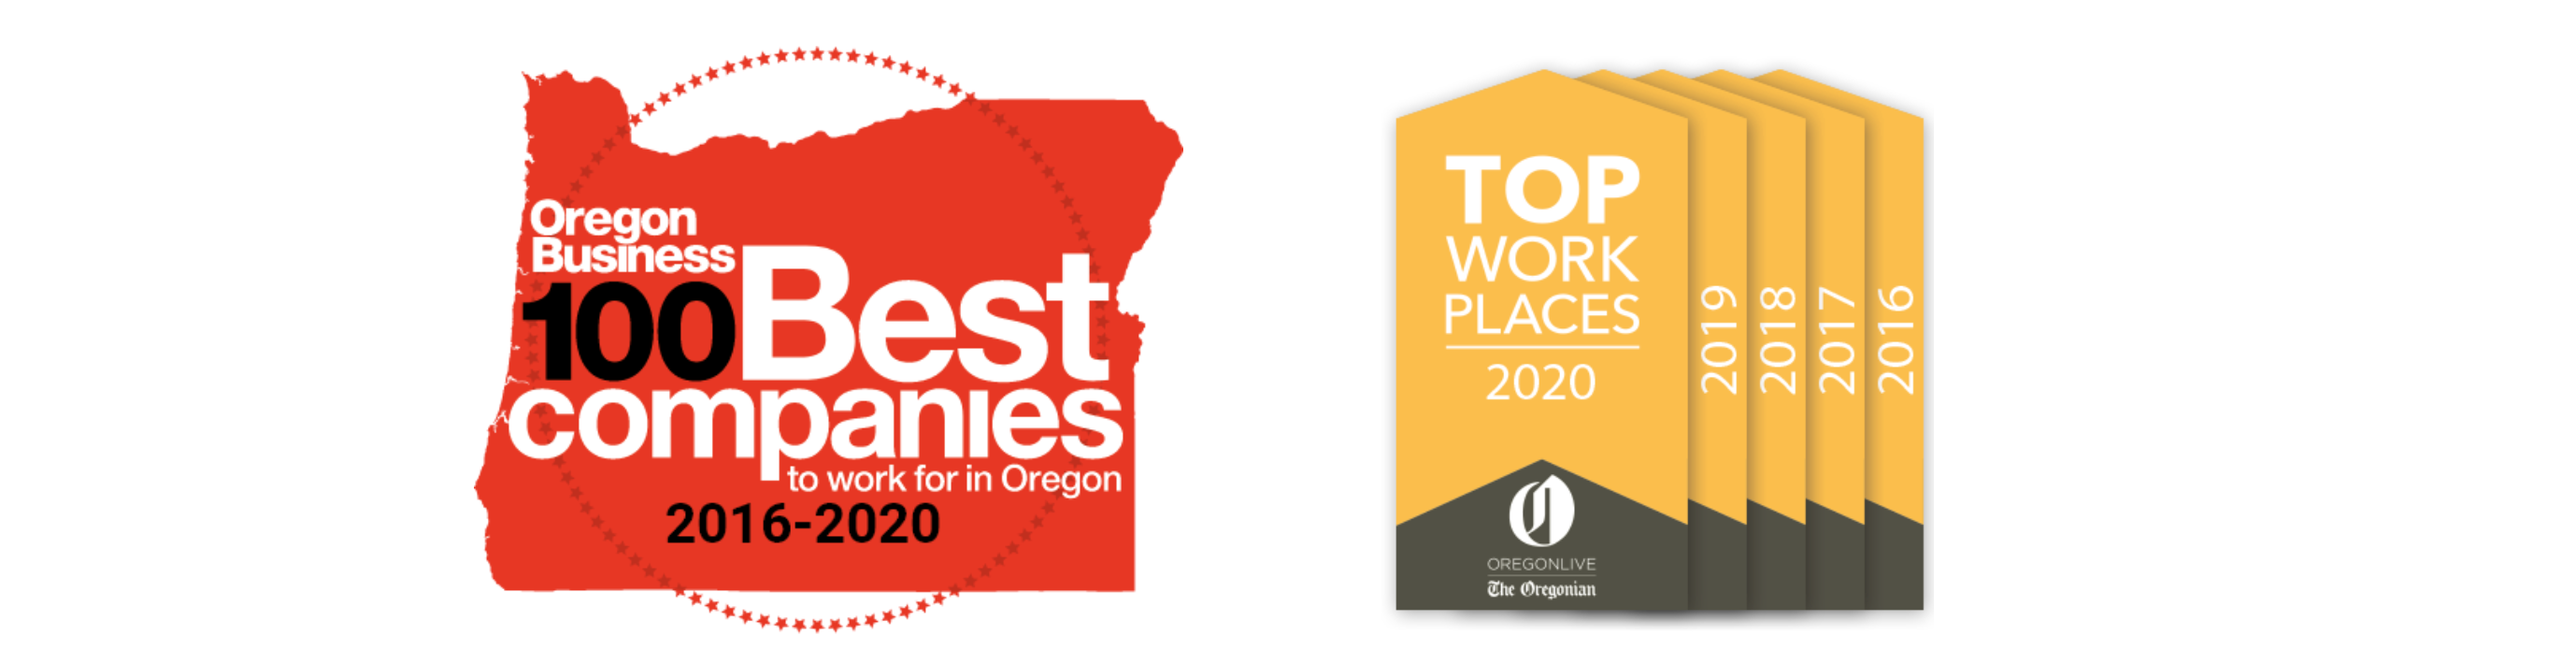 TTR Best places to work in Oregon